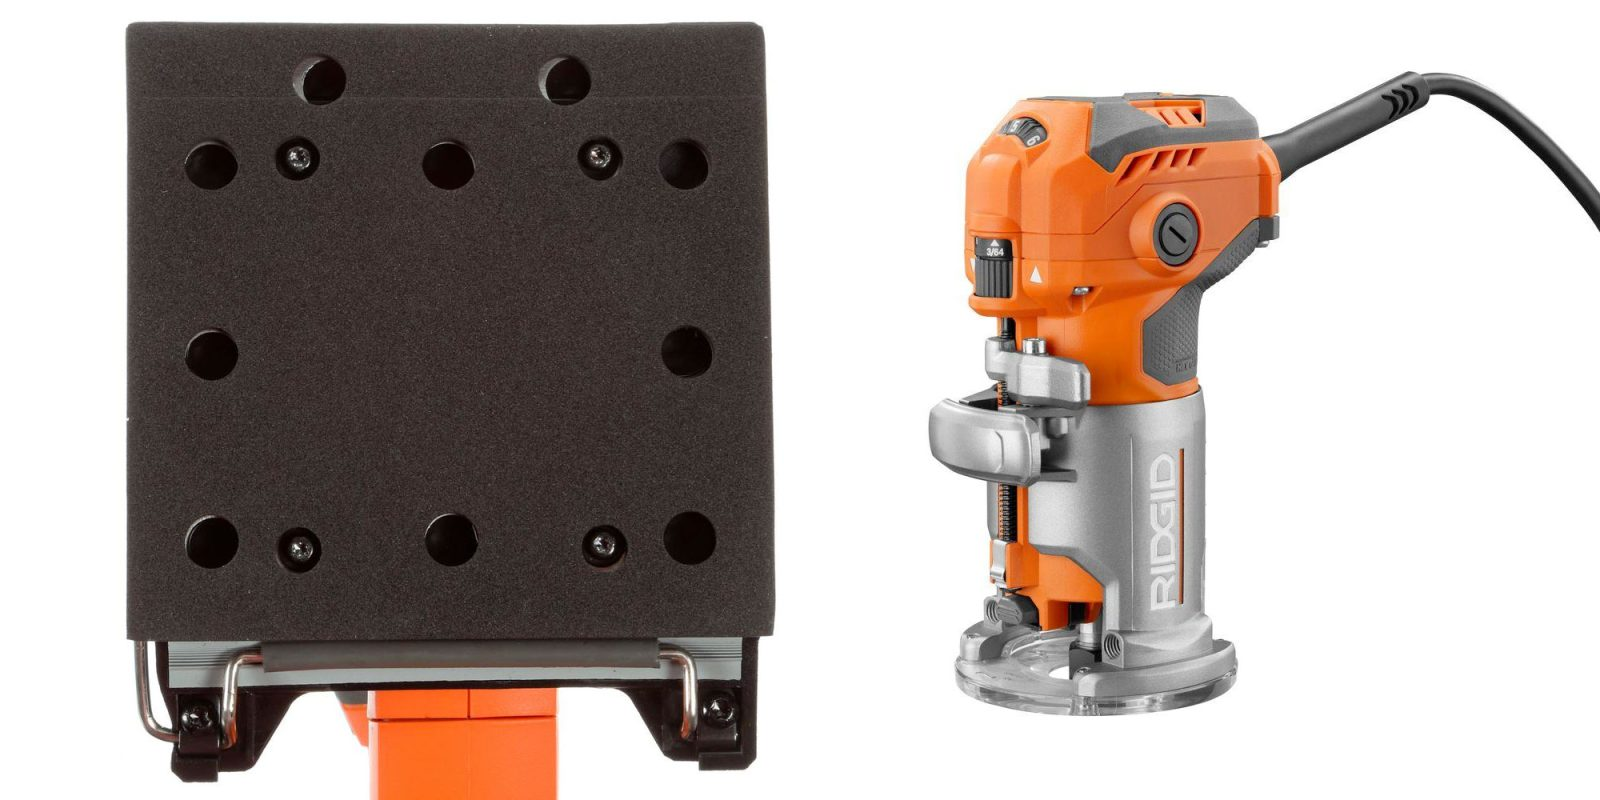 Be ready for weekend projects w/ RIDGID's corded trim router & sander at $99 ($150+ value)